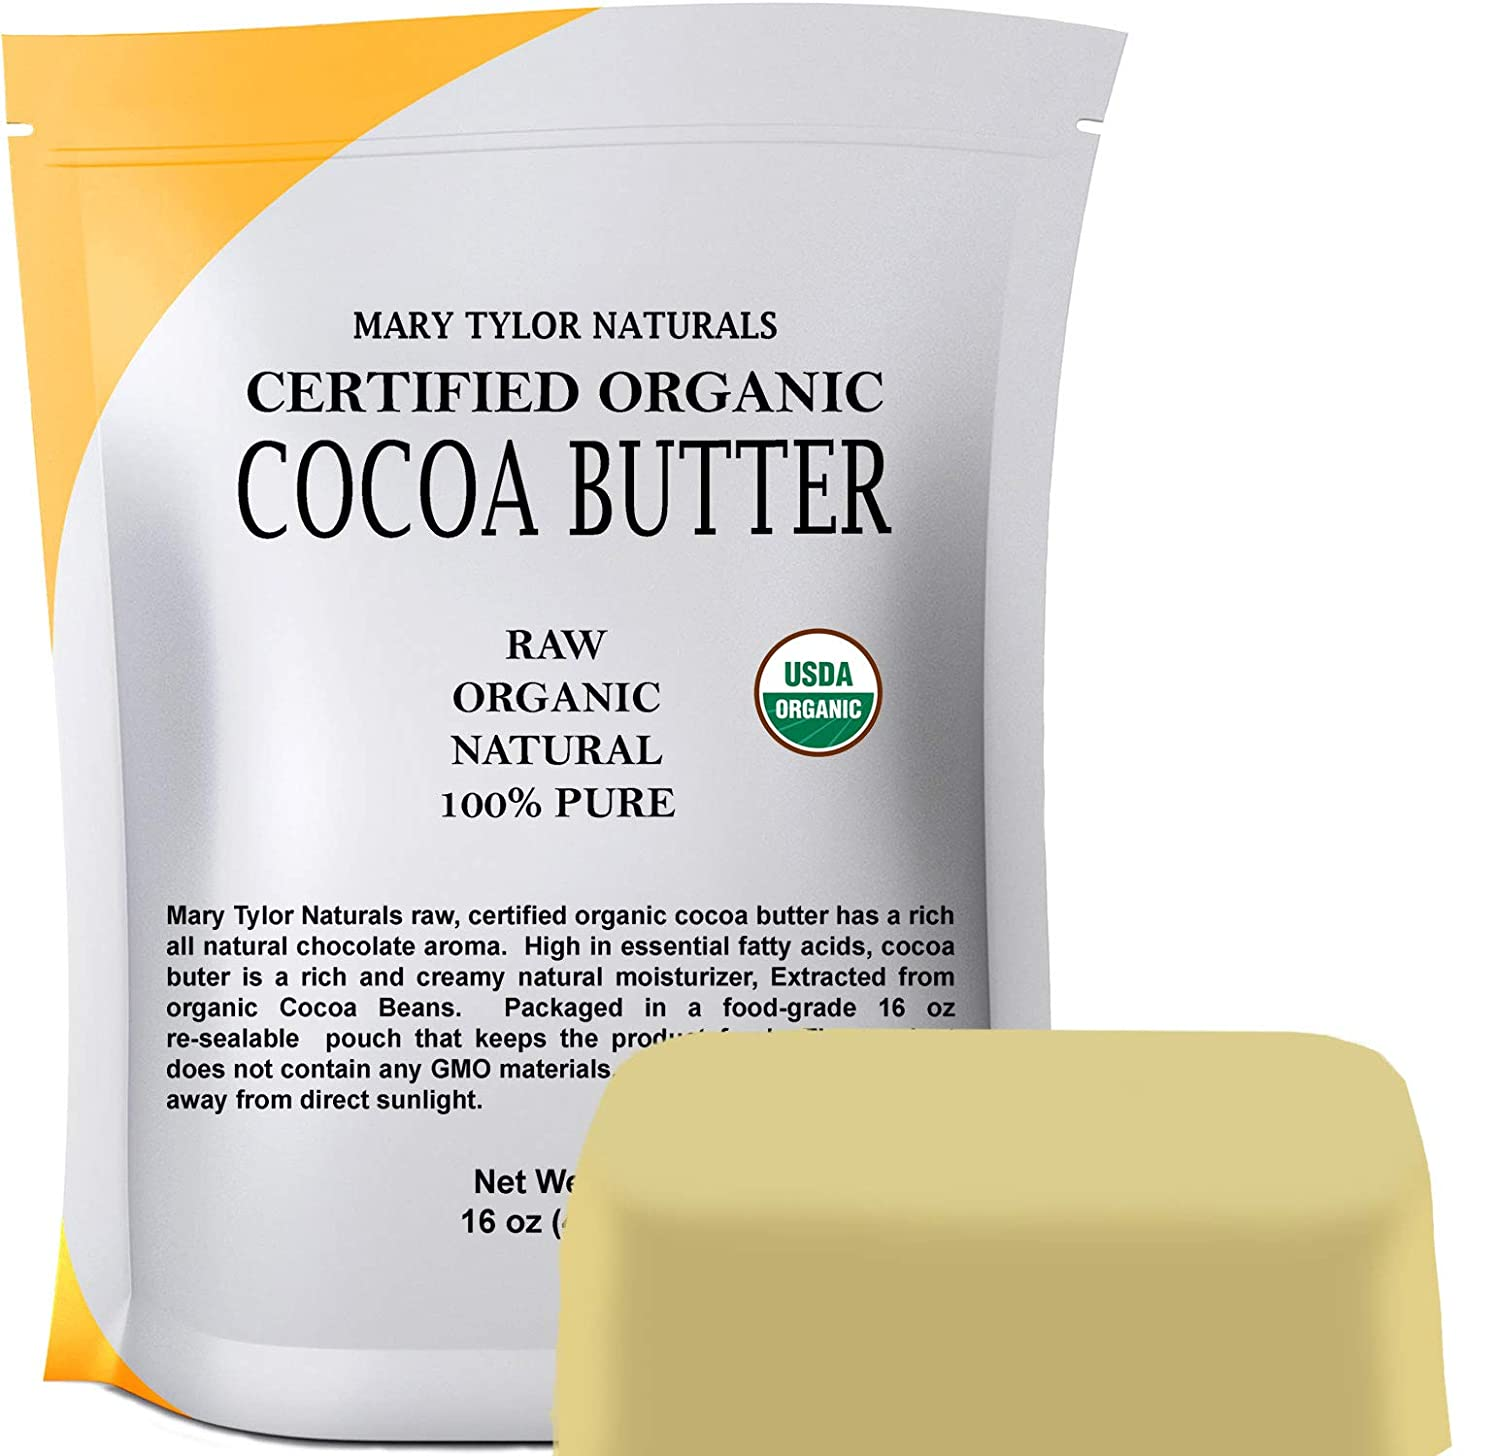 Organic Cocoa Butter USDA Certified by Mary Tylor Naturals Raw Unrefined, Non-Deodorized, Rich In Antioxidants for DIY Recipes, Lip Balms, Lotions, Creams, Stretch Marks